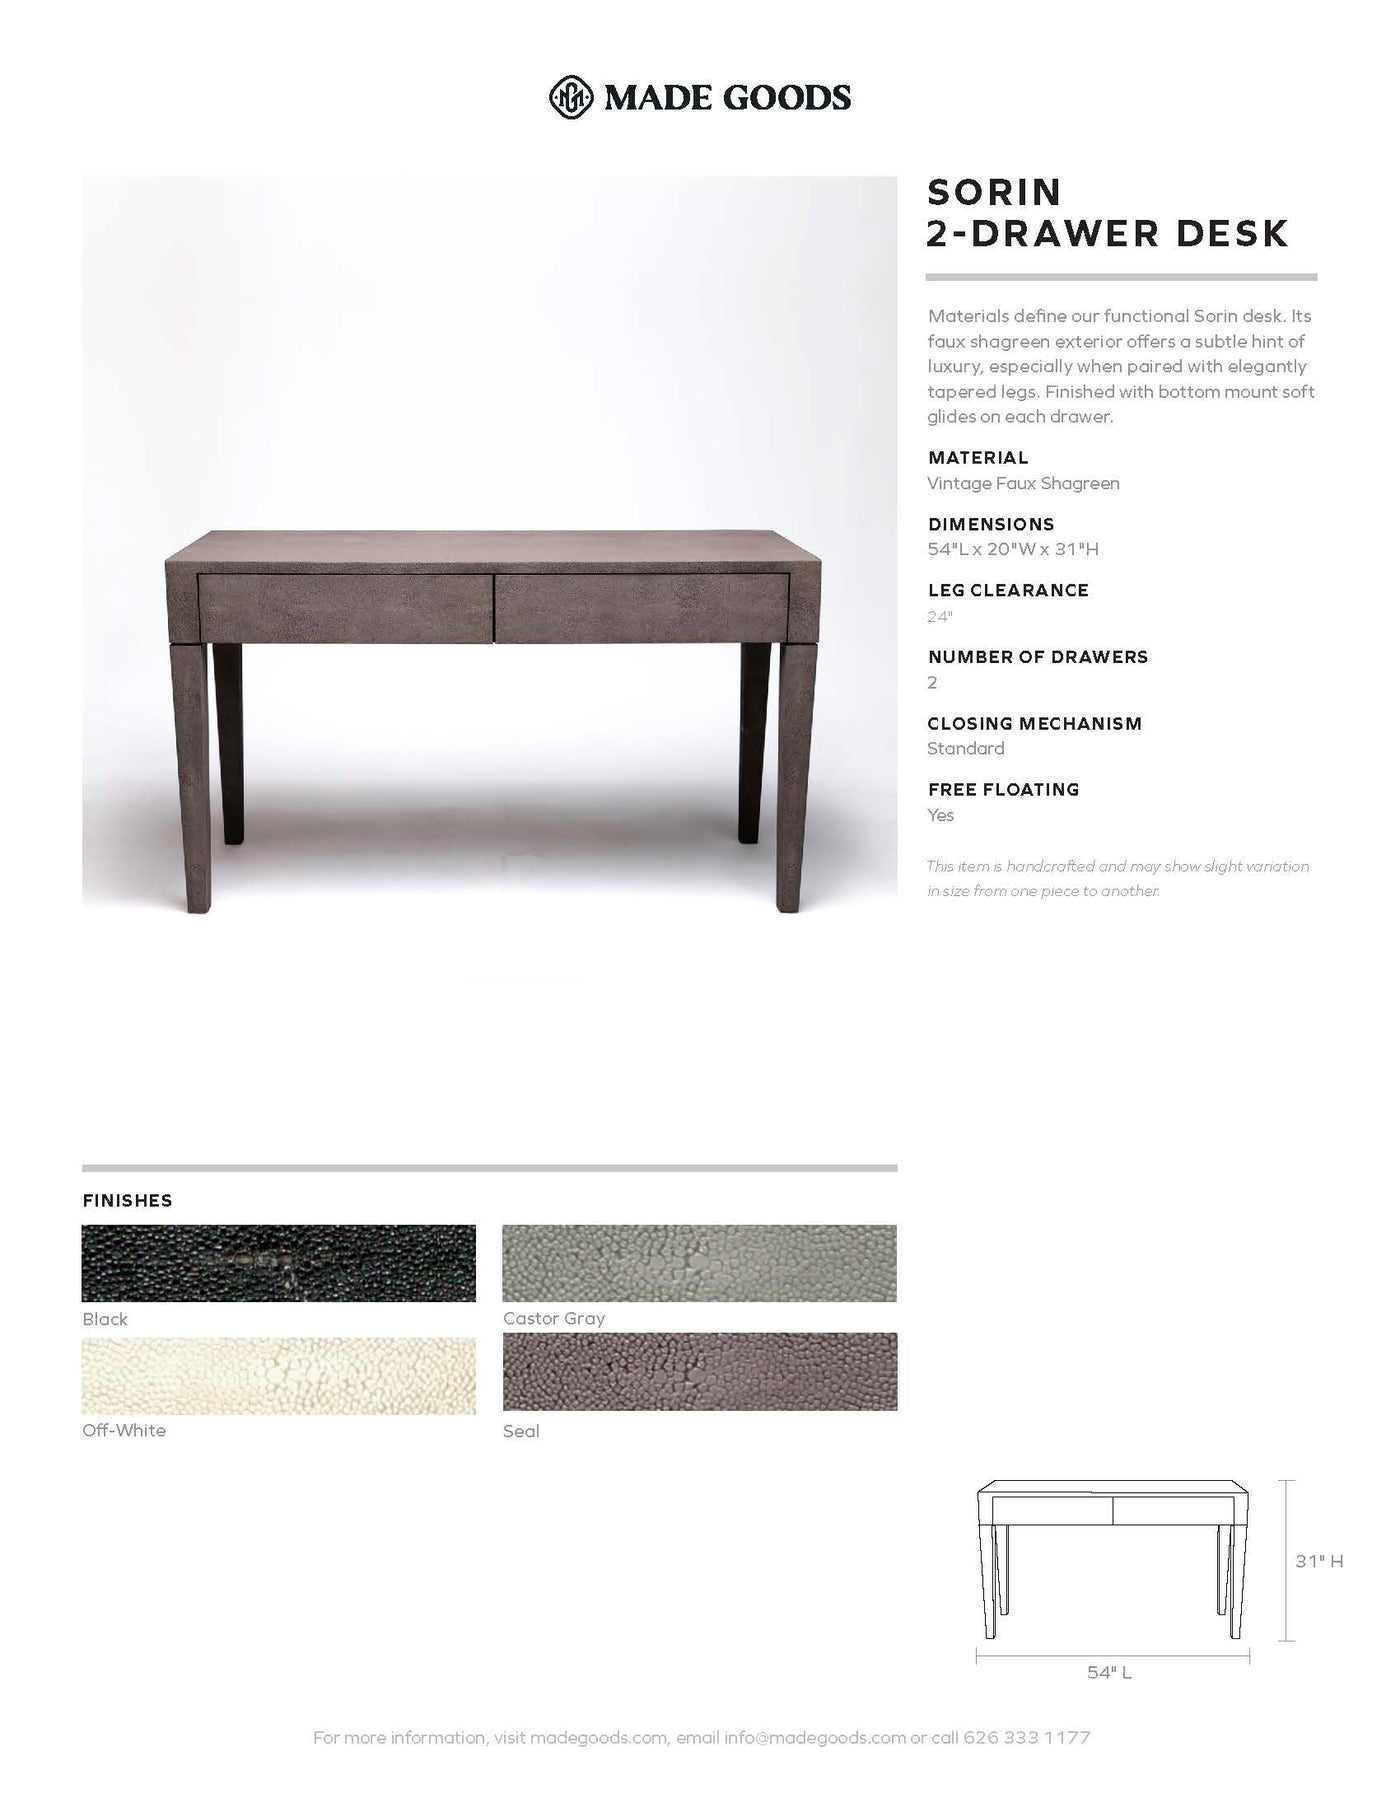 made goods sorin 2 two drawer desk tearsheet